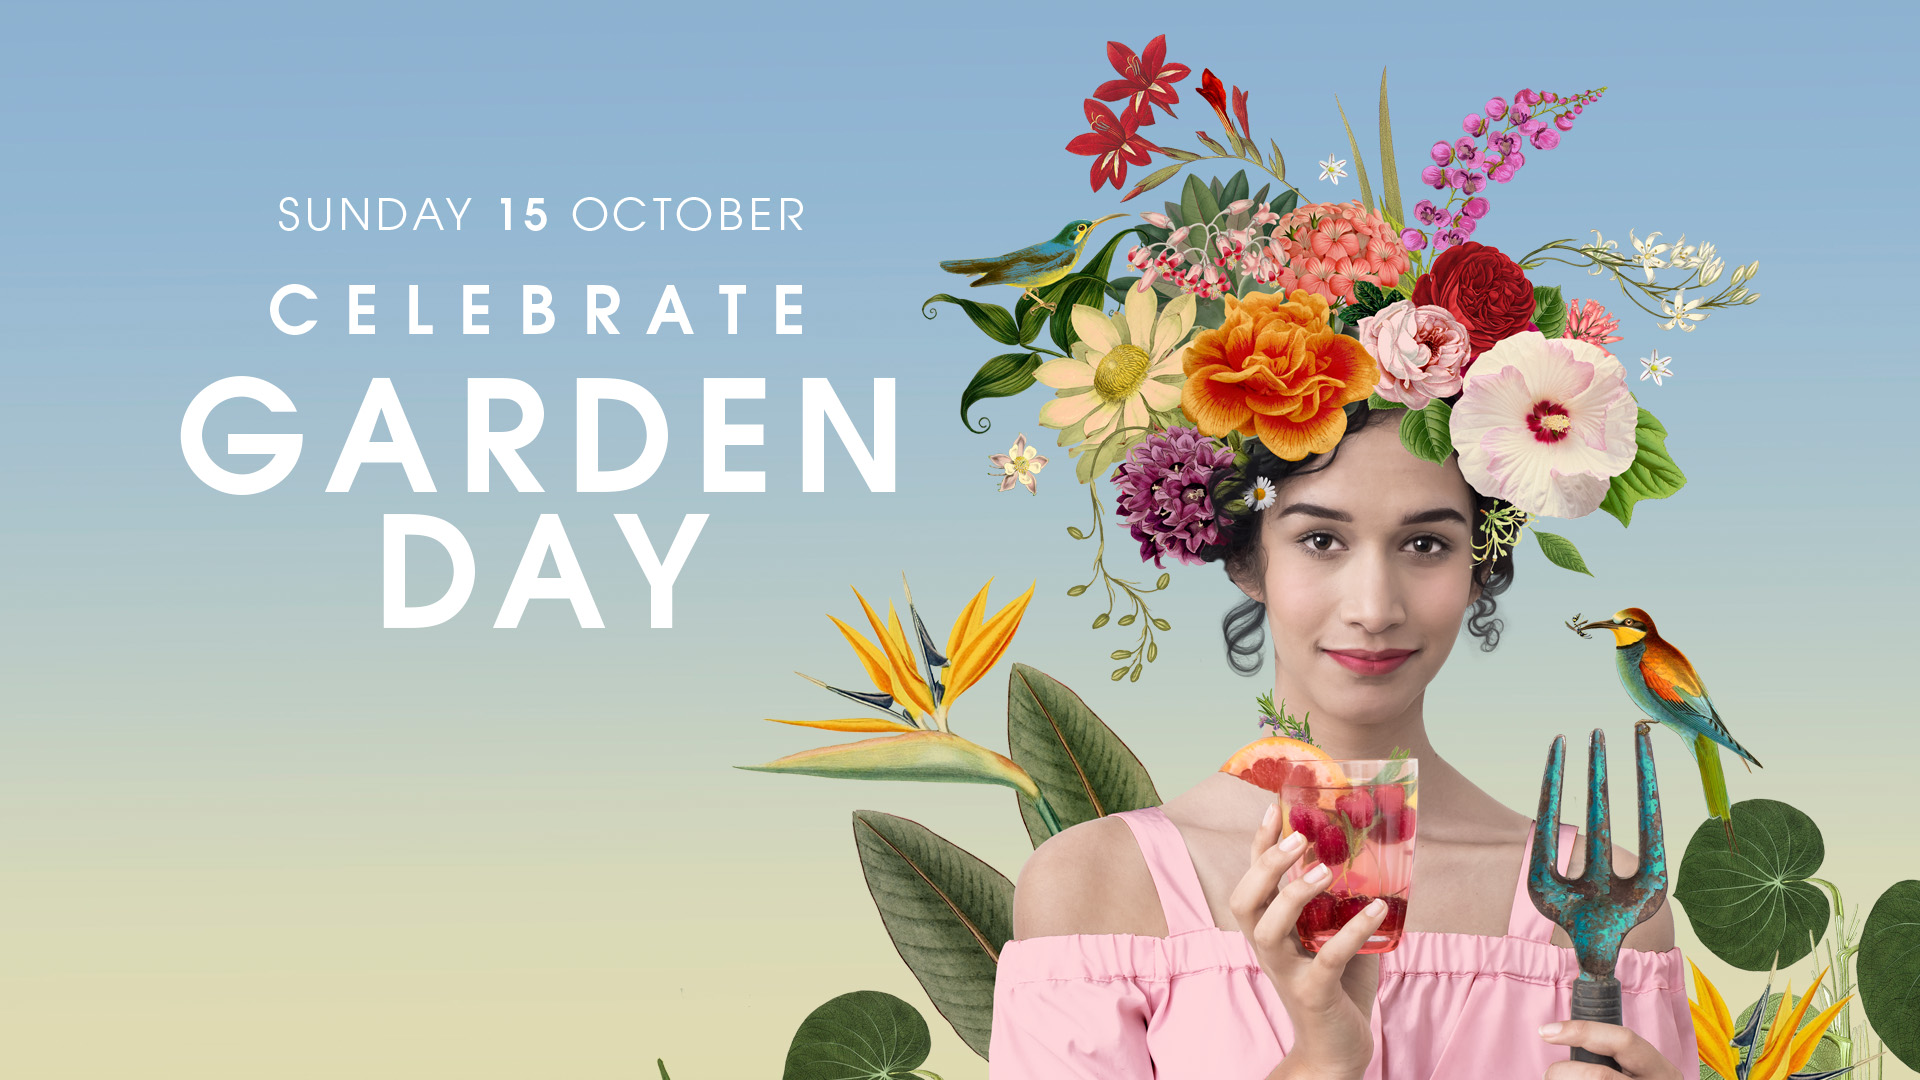 Get blooming ready for Garden Day 2017!